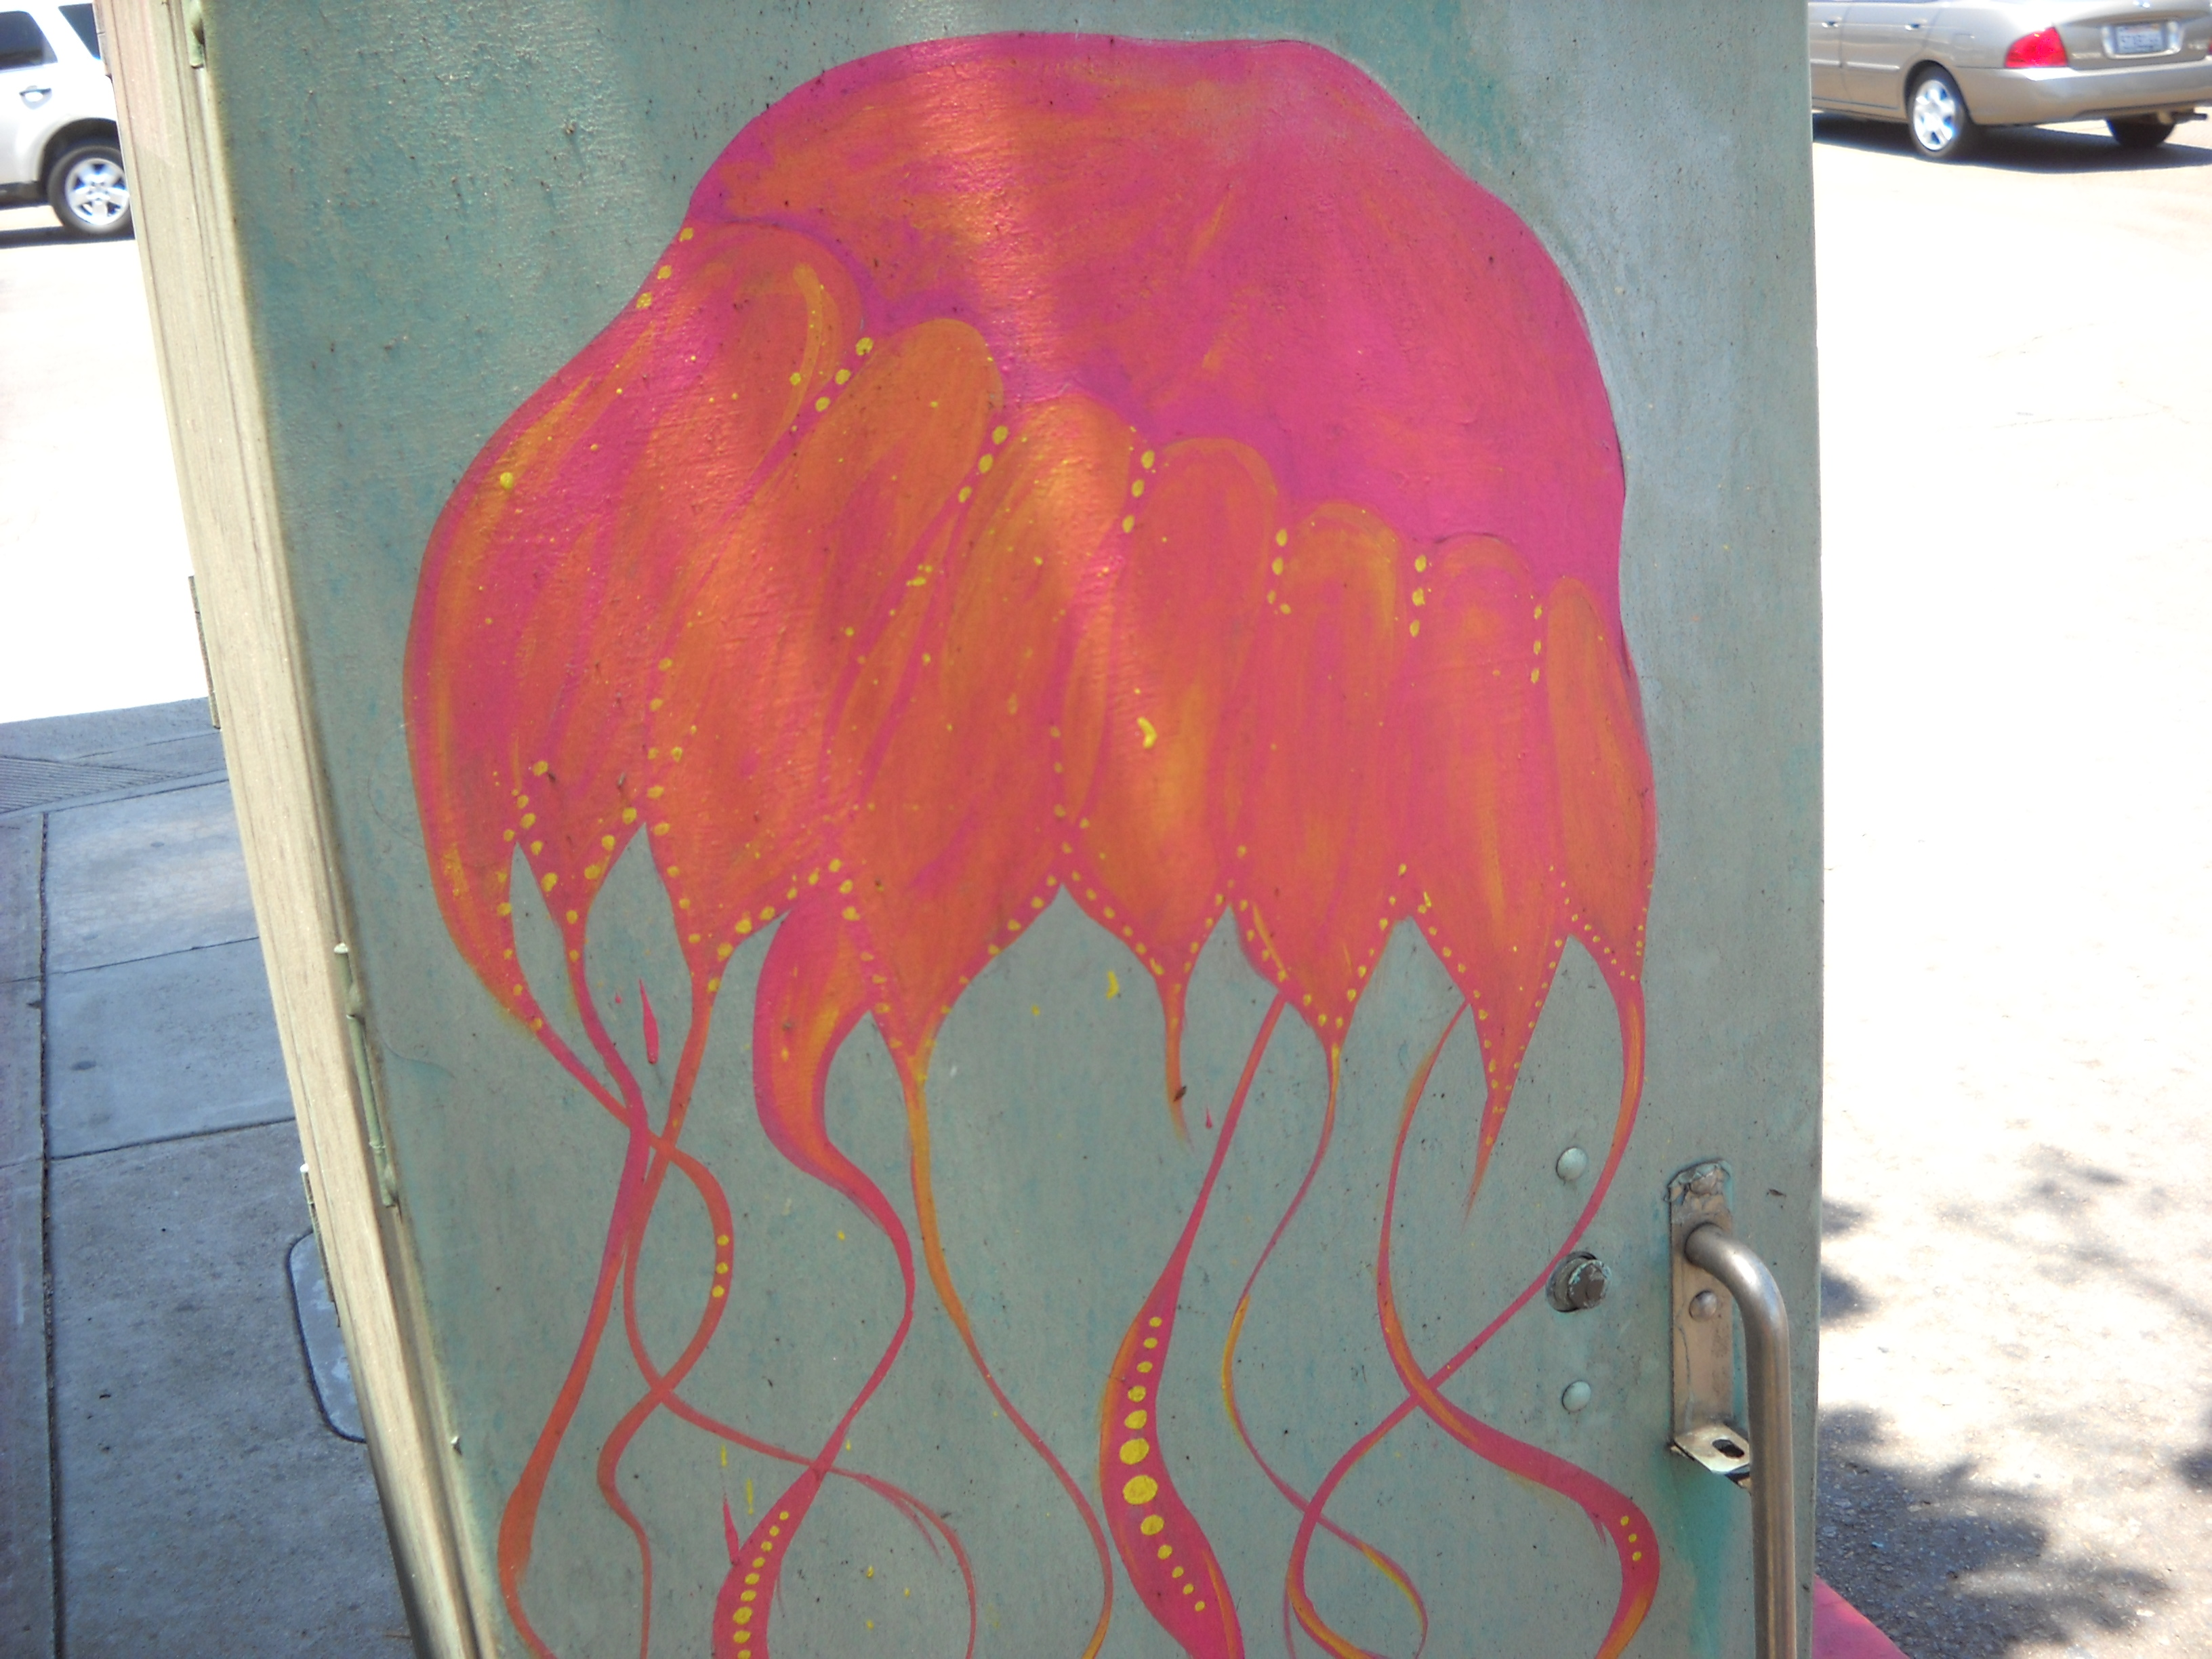 Utility box art in honor of jellyfish. Near Point Loma Post Office.